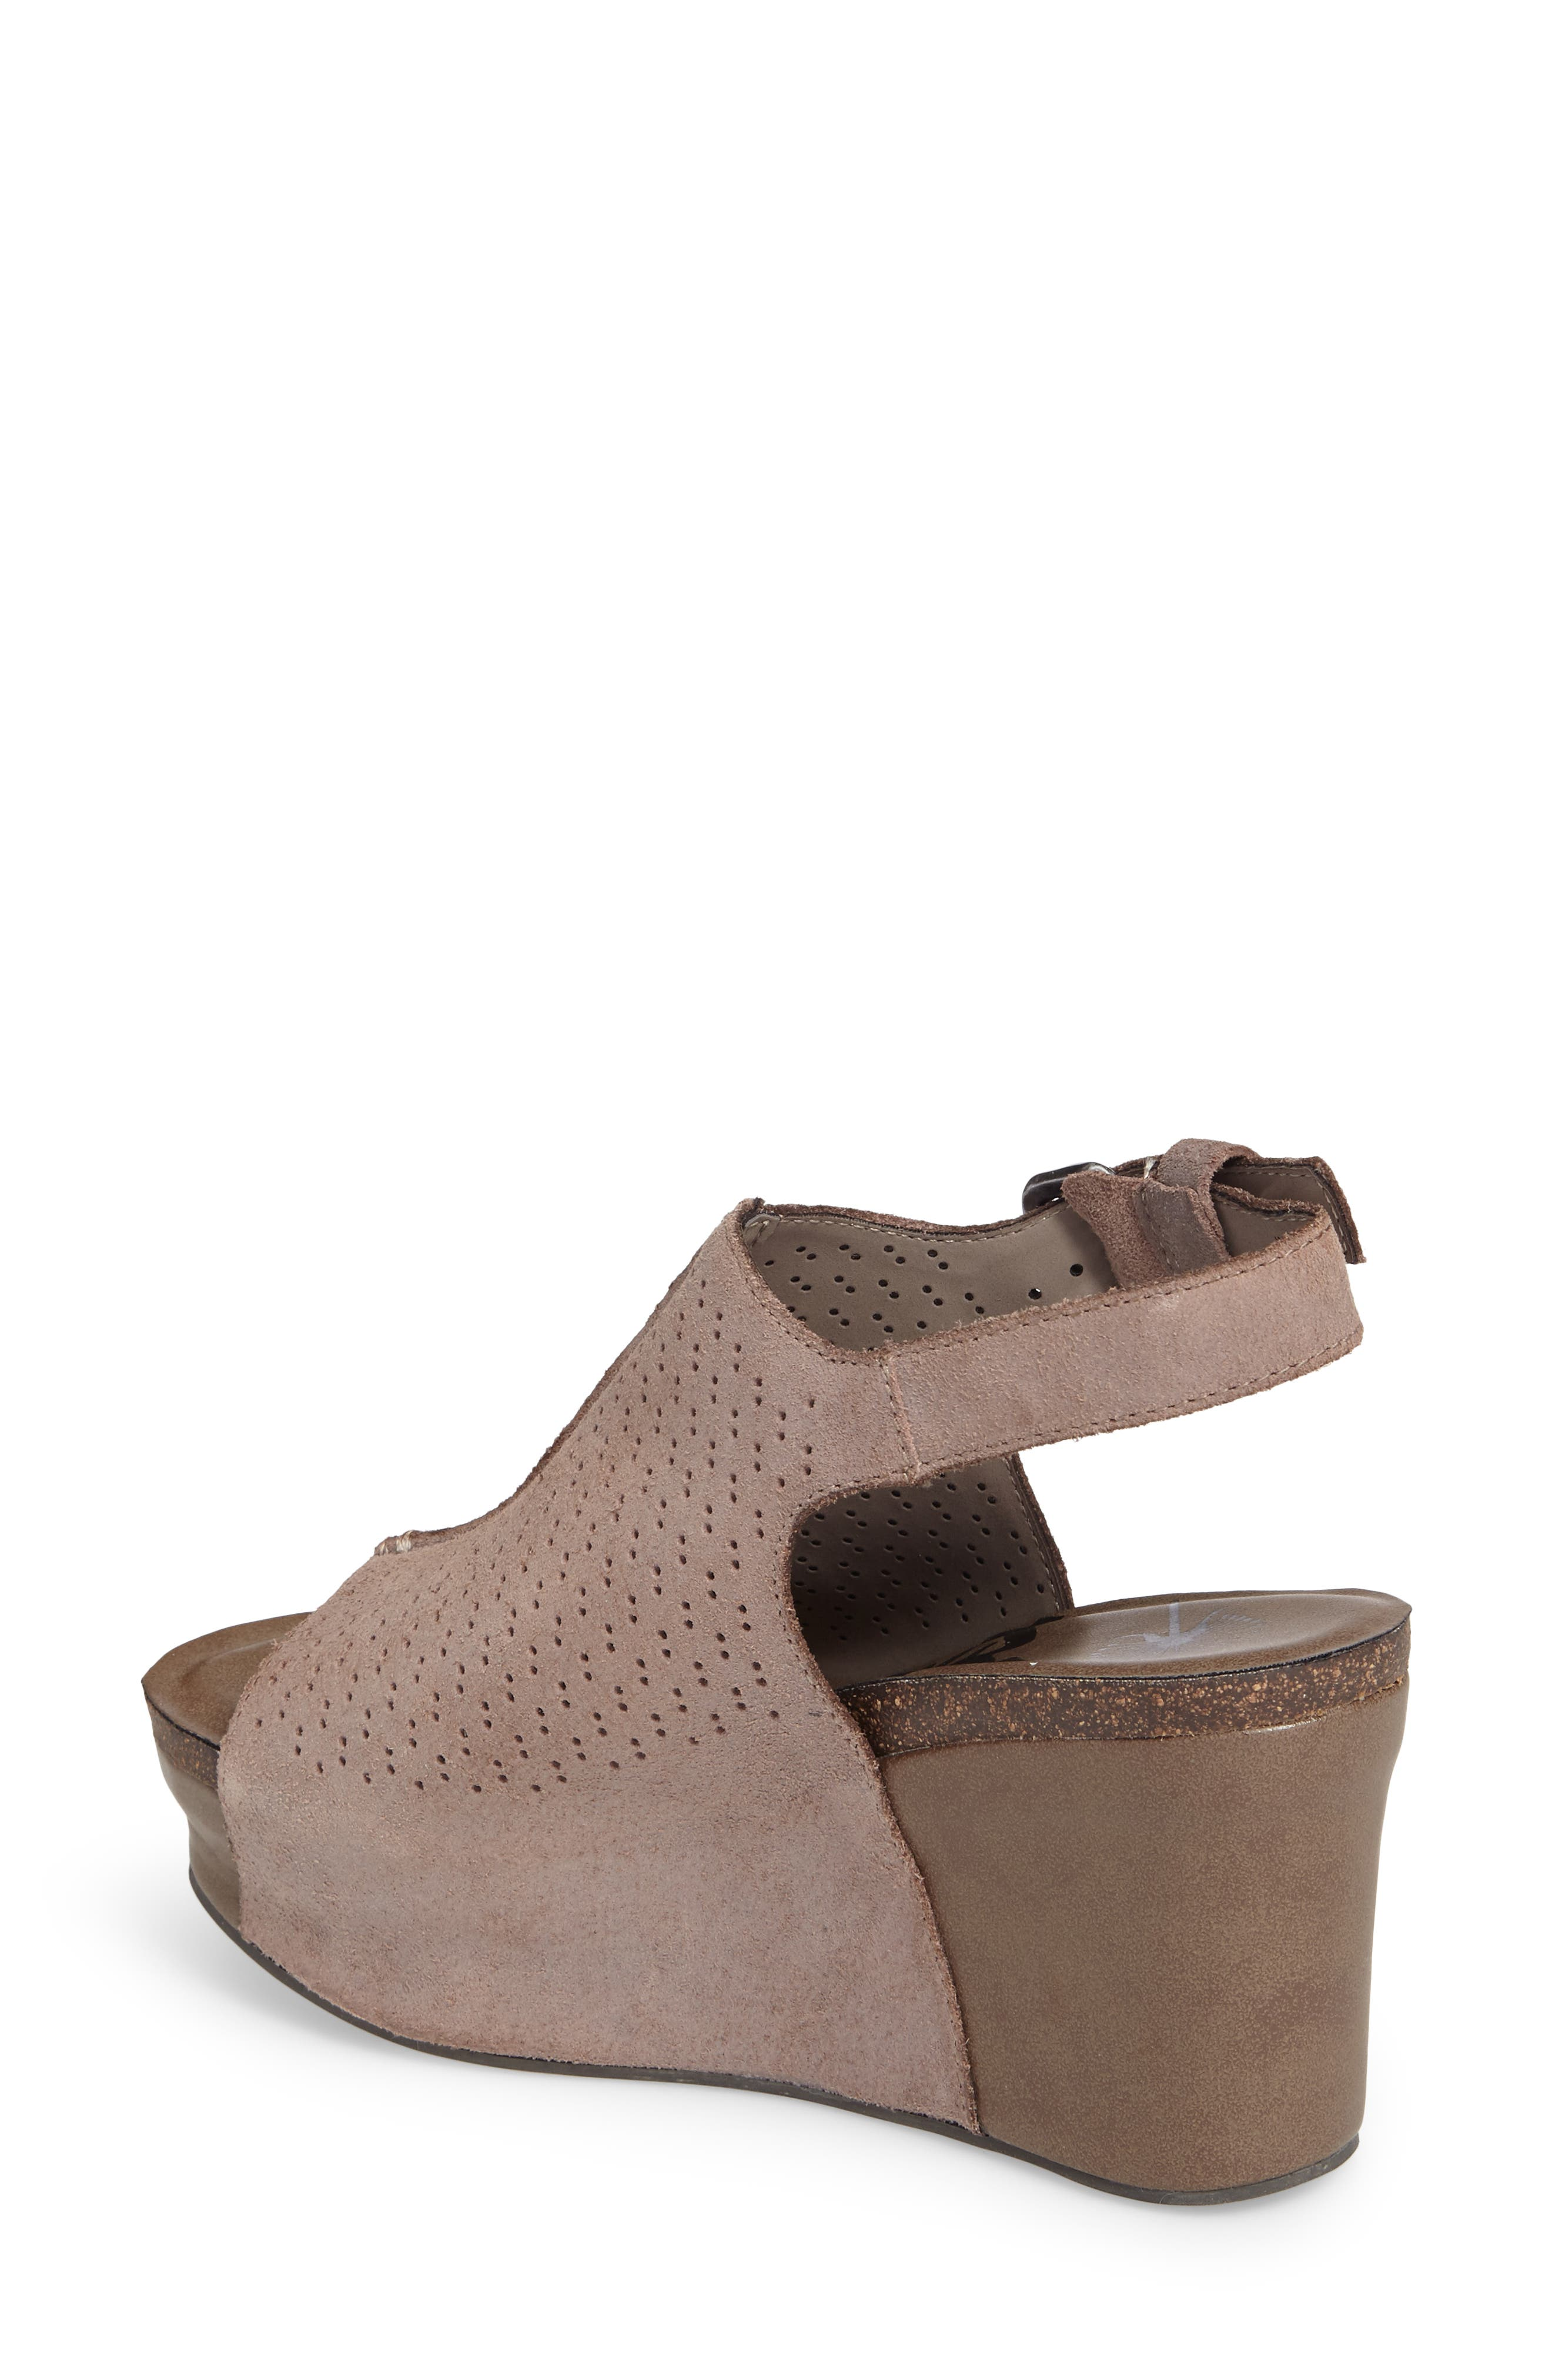 Alternate Image 2  - OTBT Jaunt Platform Wedge Sandal (Women)